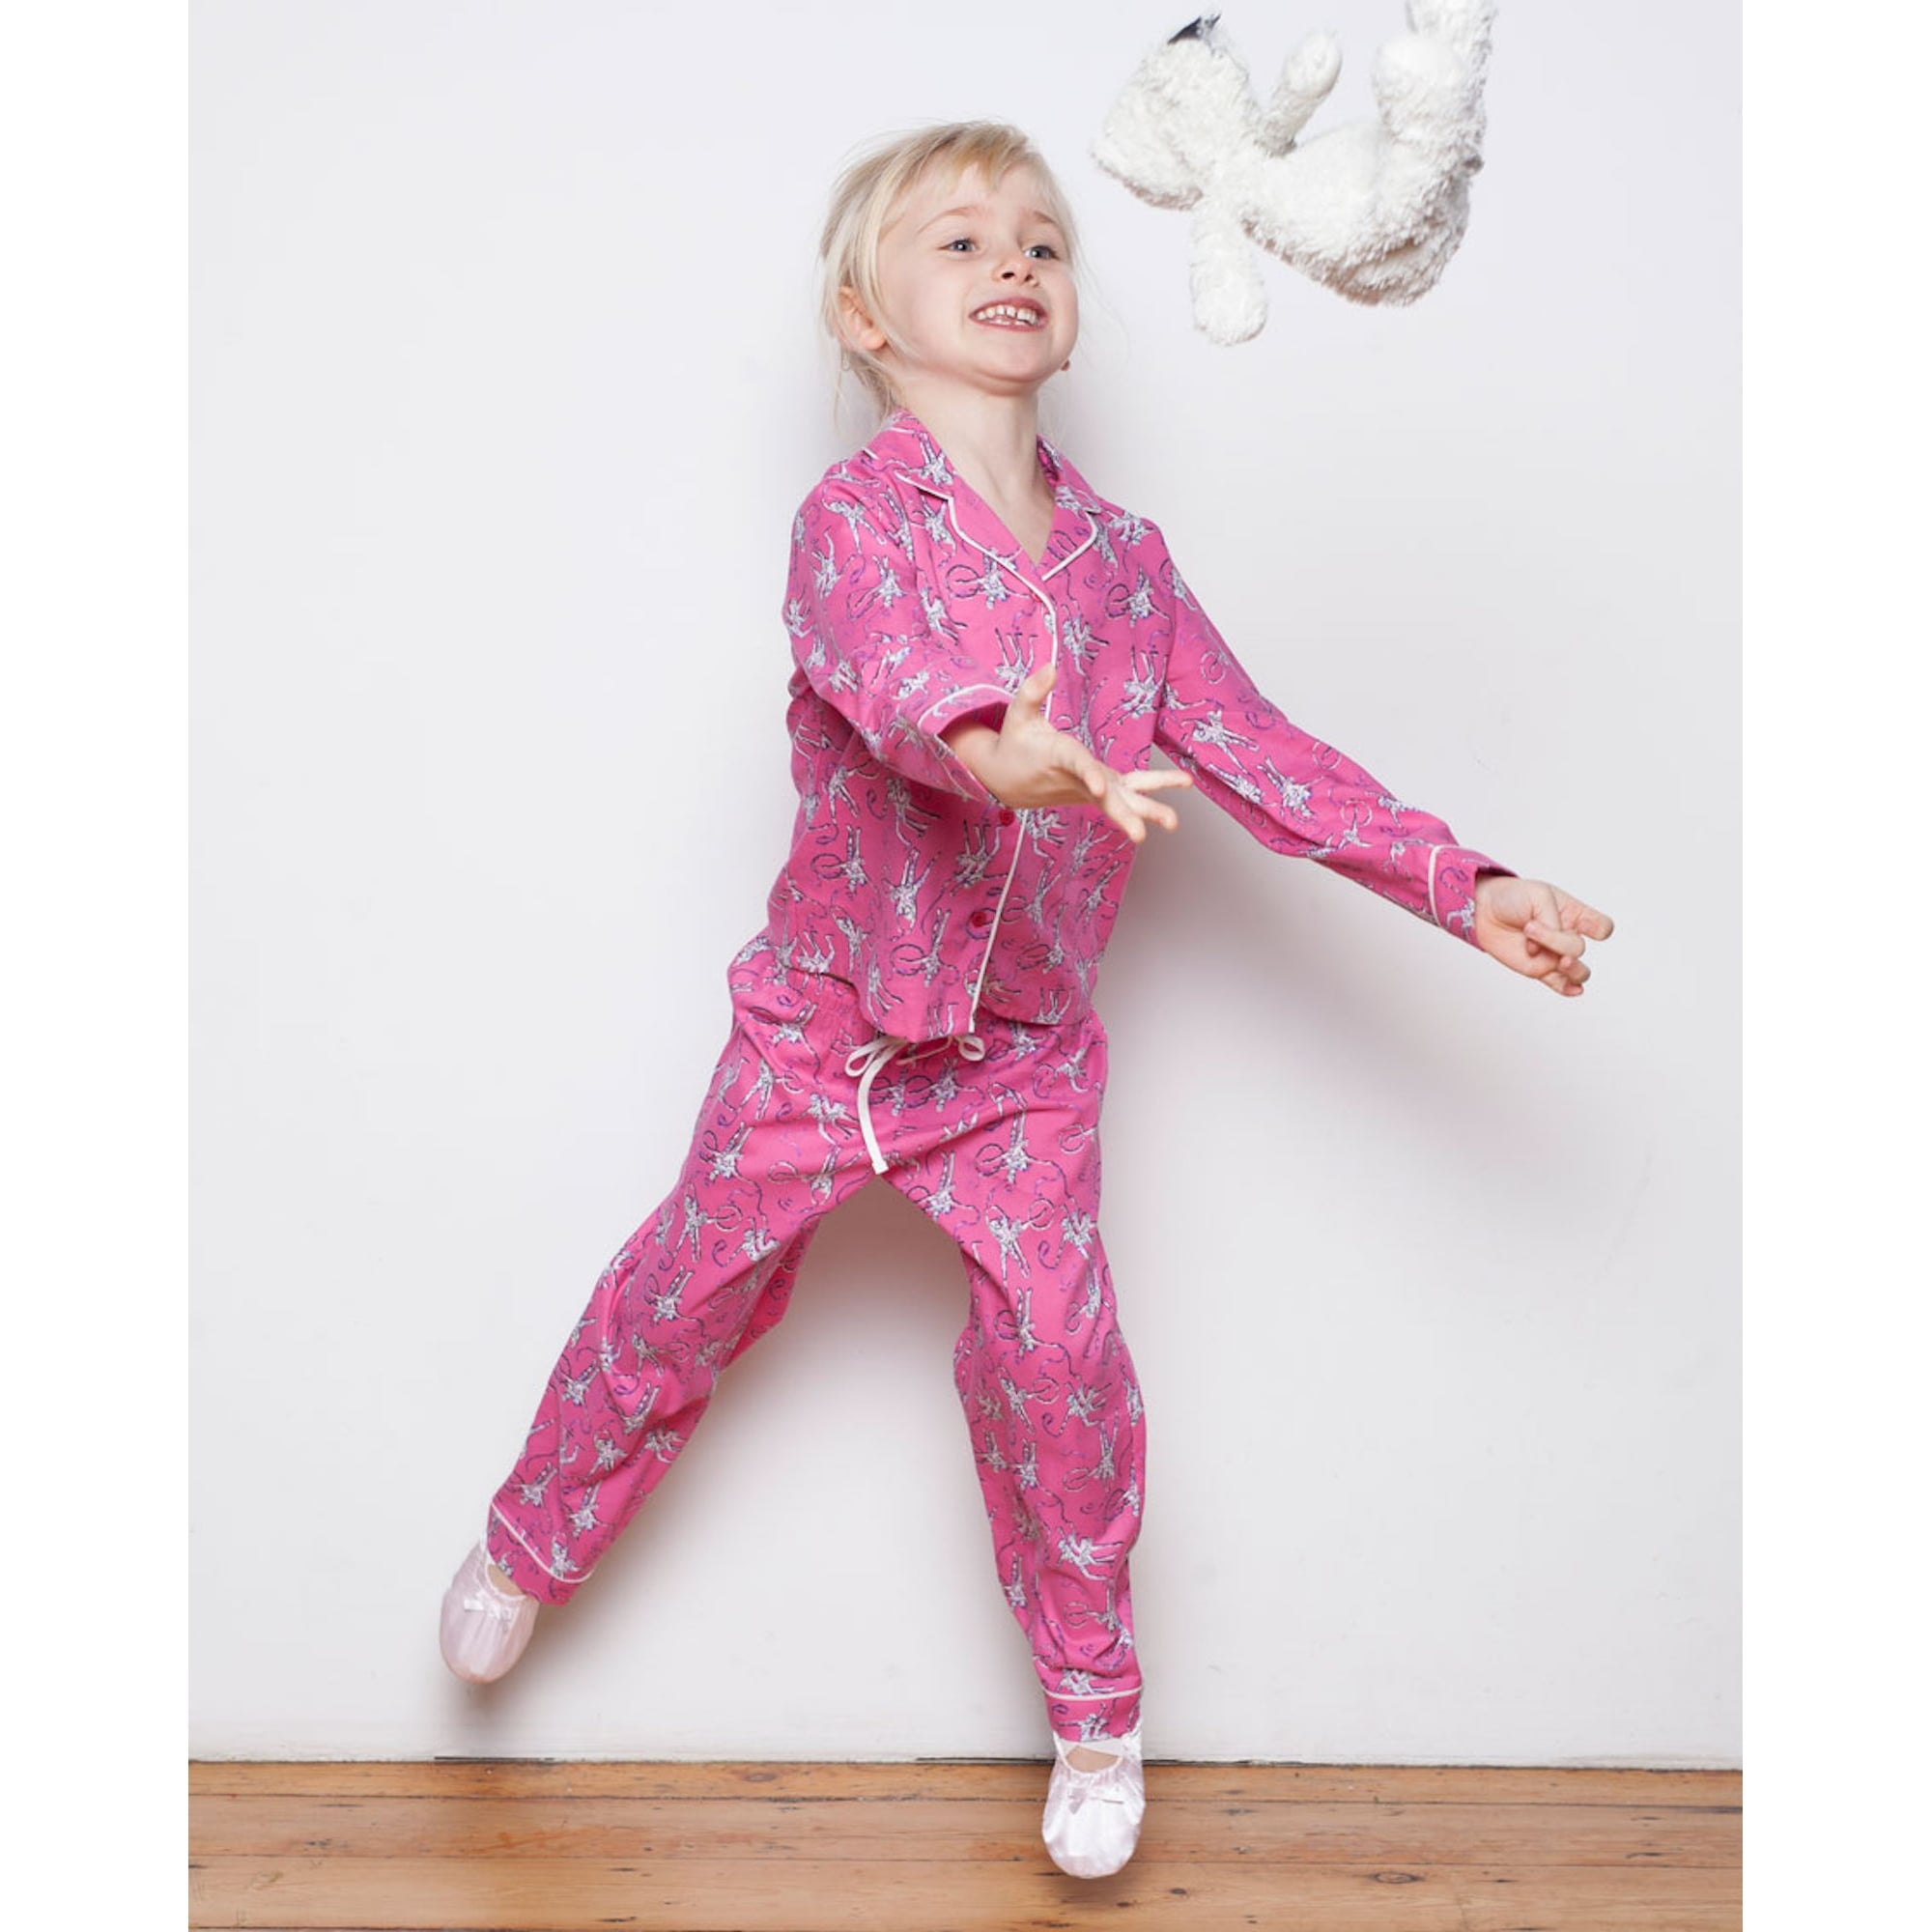 Enjoy free shipping and easy returns every day at Kohl's. Find great deals on Clearance Kids Sleepwear at Kohl's today!